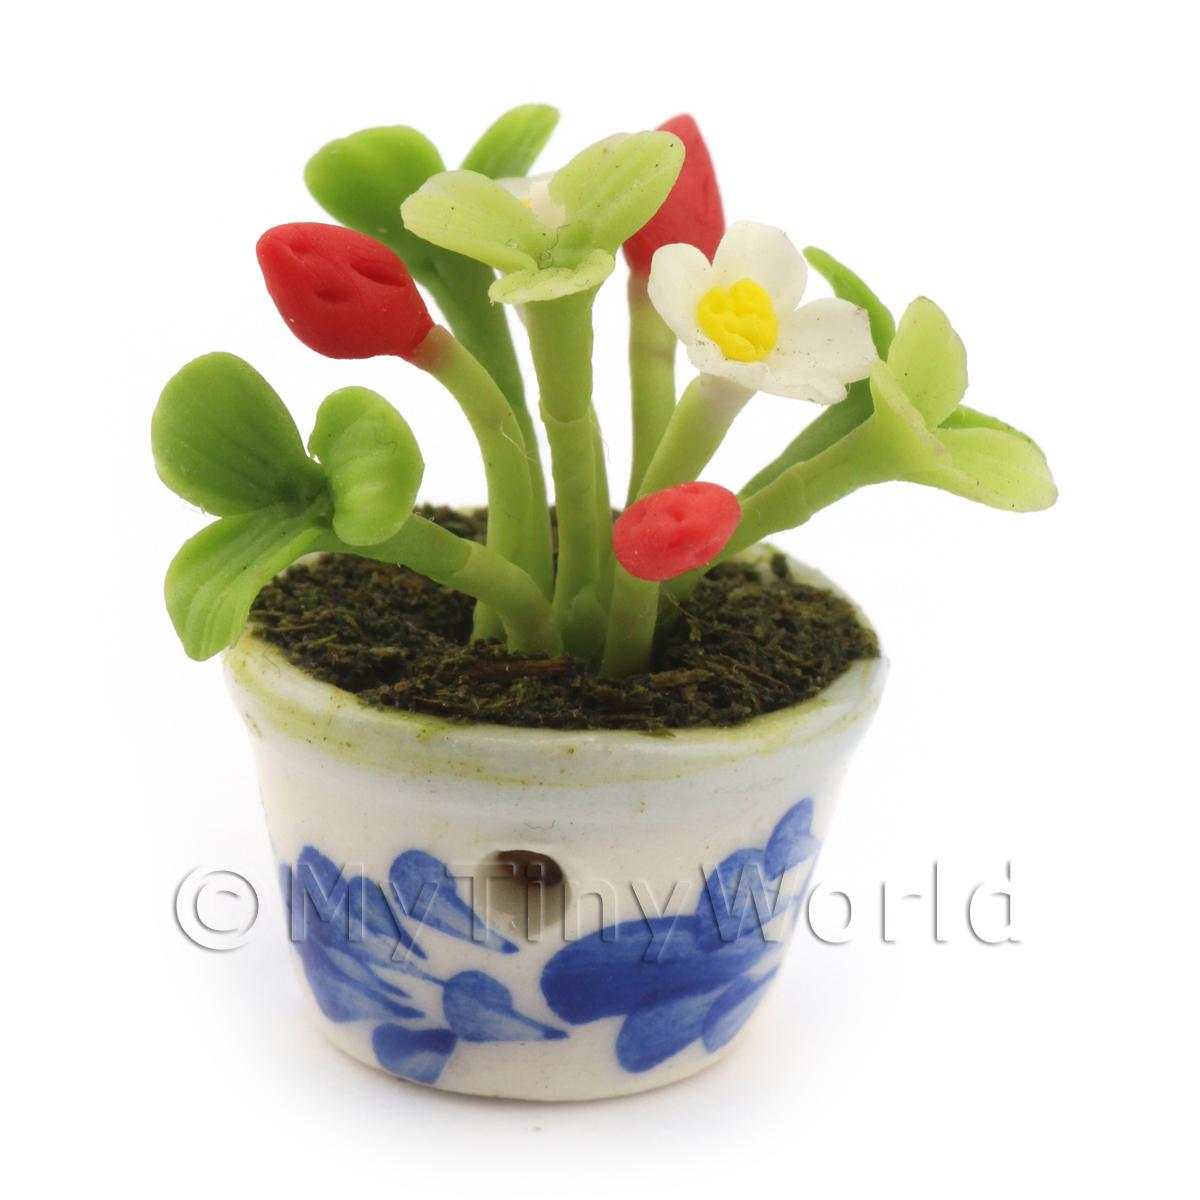 Dolls House Miniature Strawberry Plant